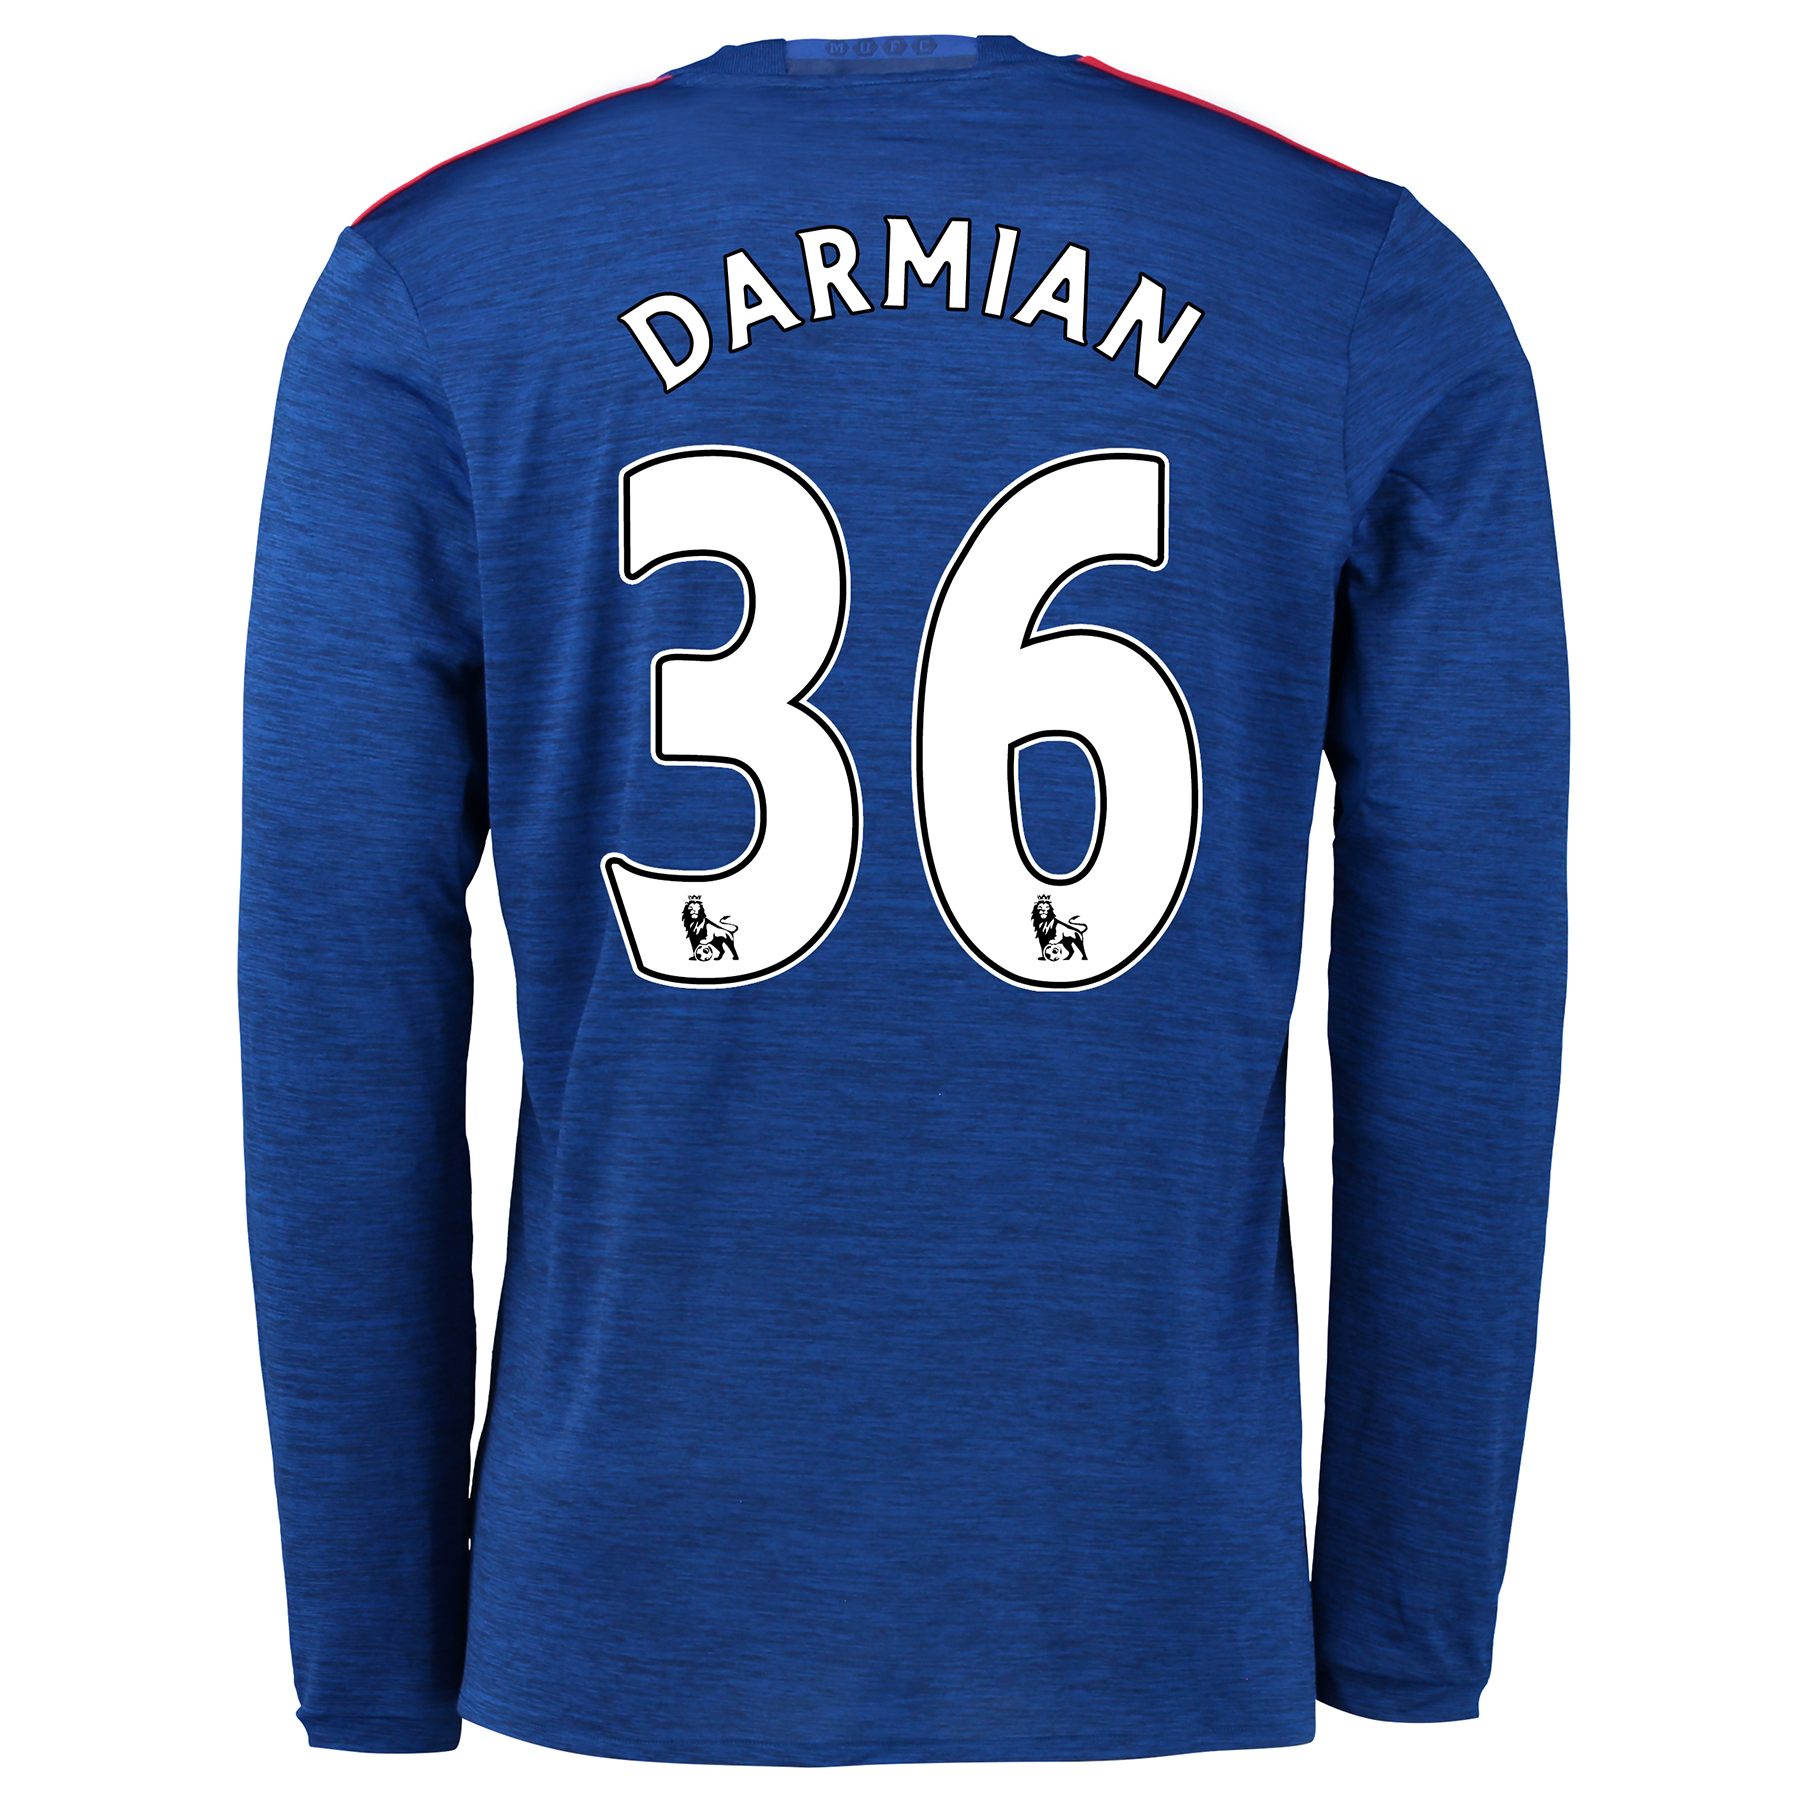 Manchester United Away Shirt 2016-17 - Long Sleeve with Darmian 36 pri